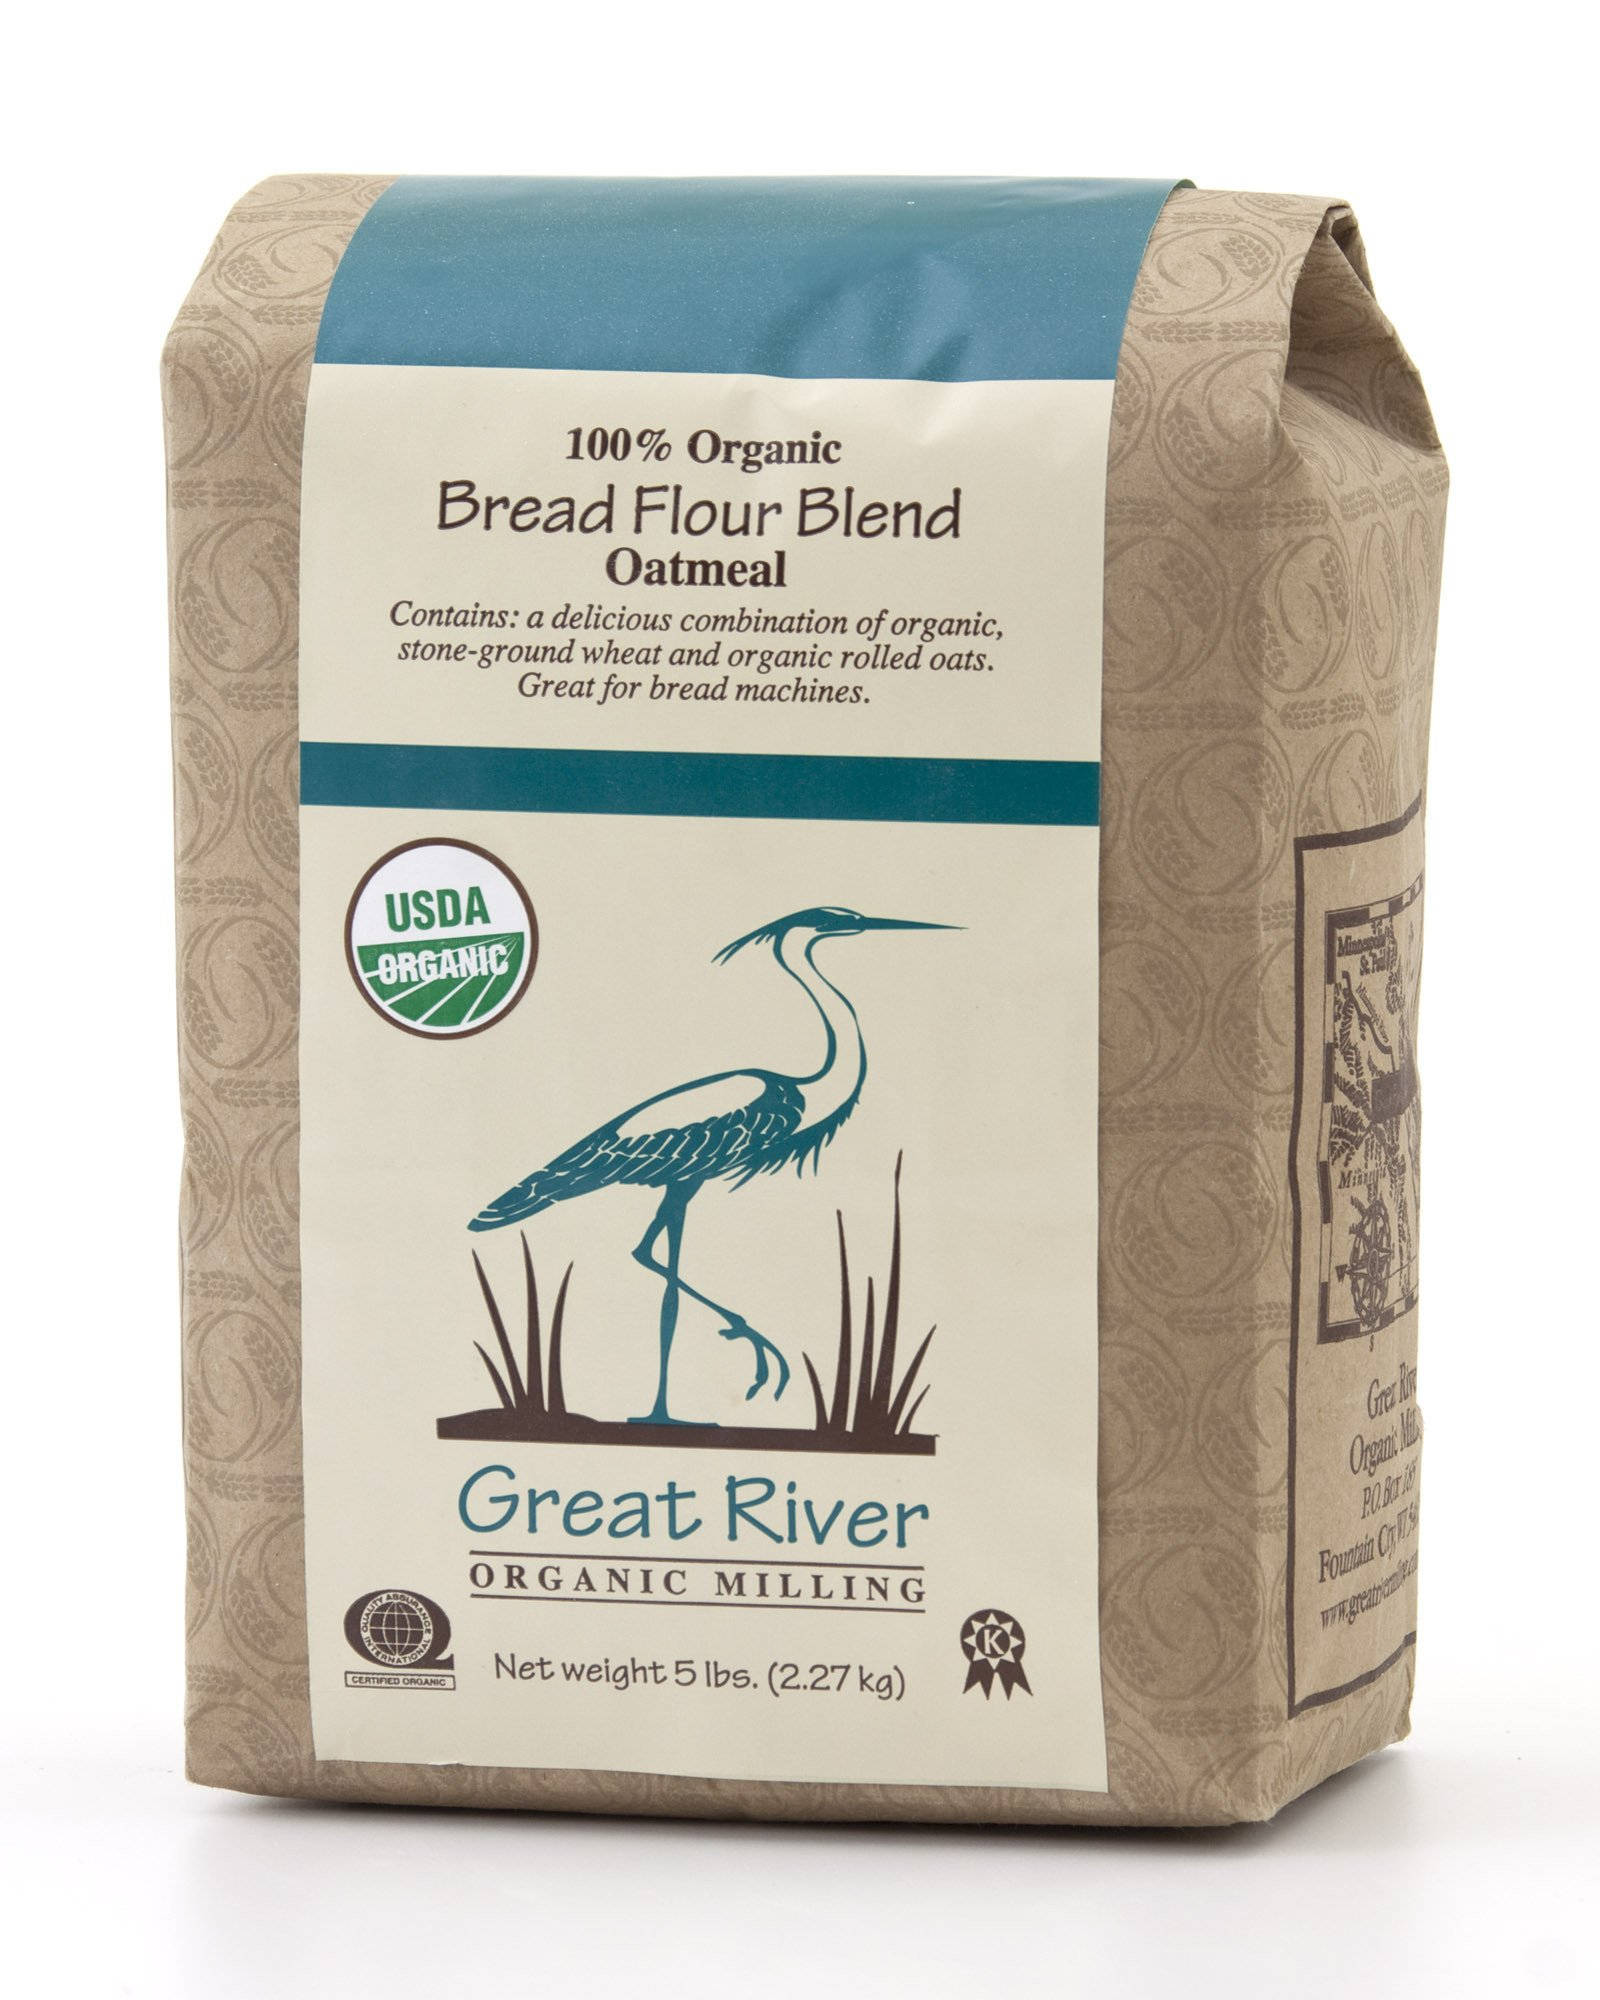 Great River Organic Milling Organic Oatmeal Bread Flour Blend (Pack of 4)